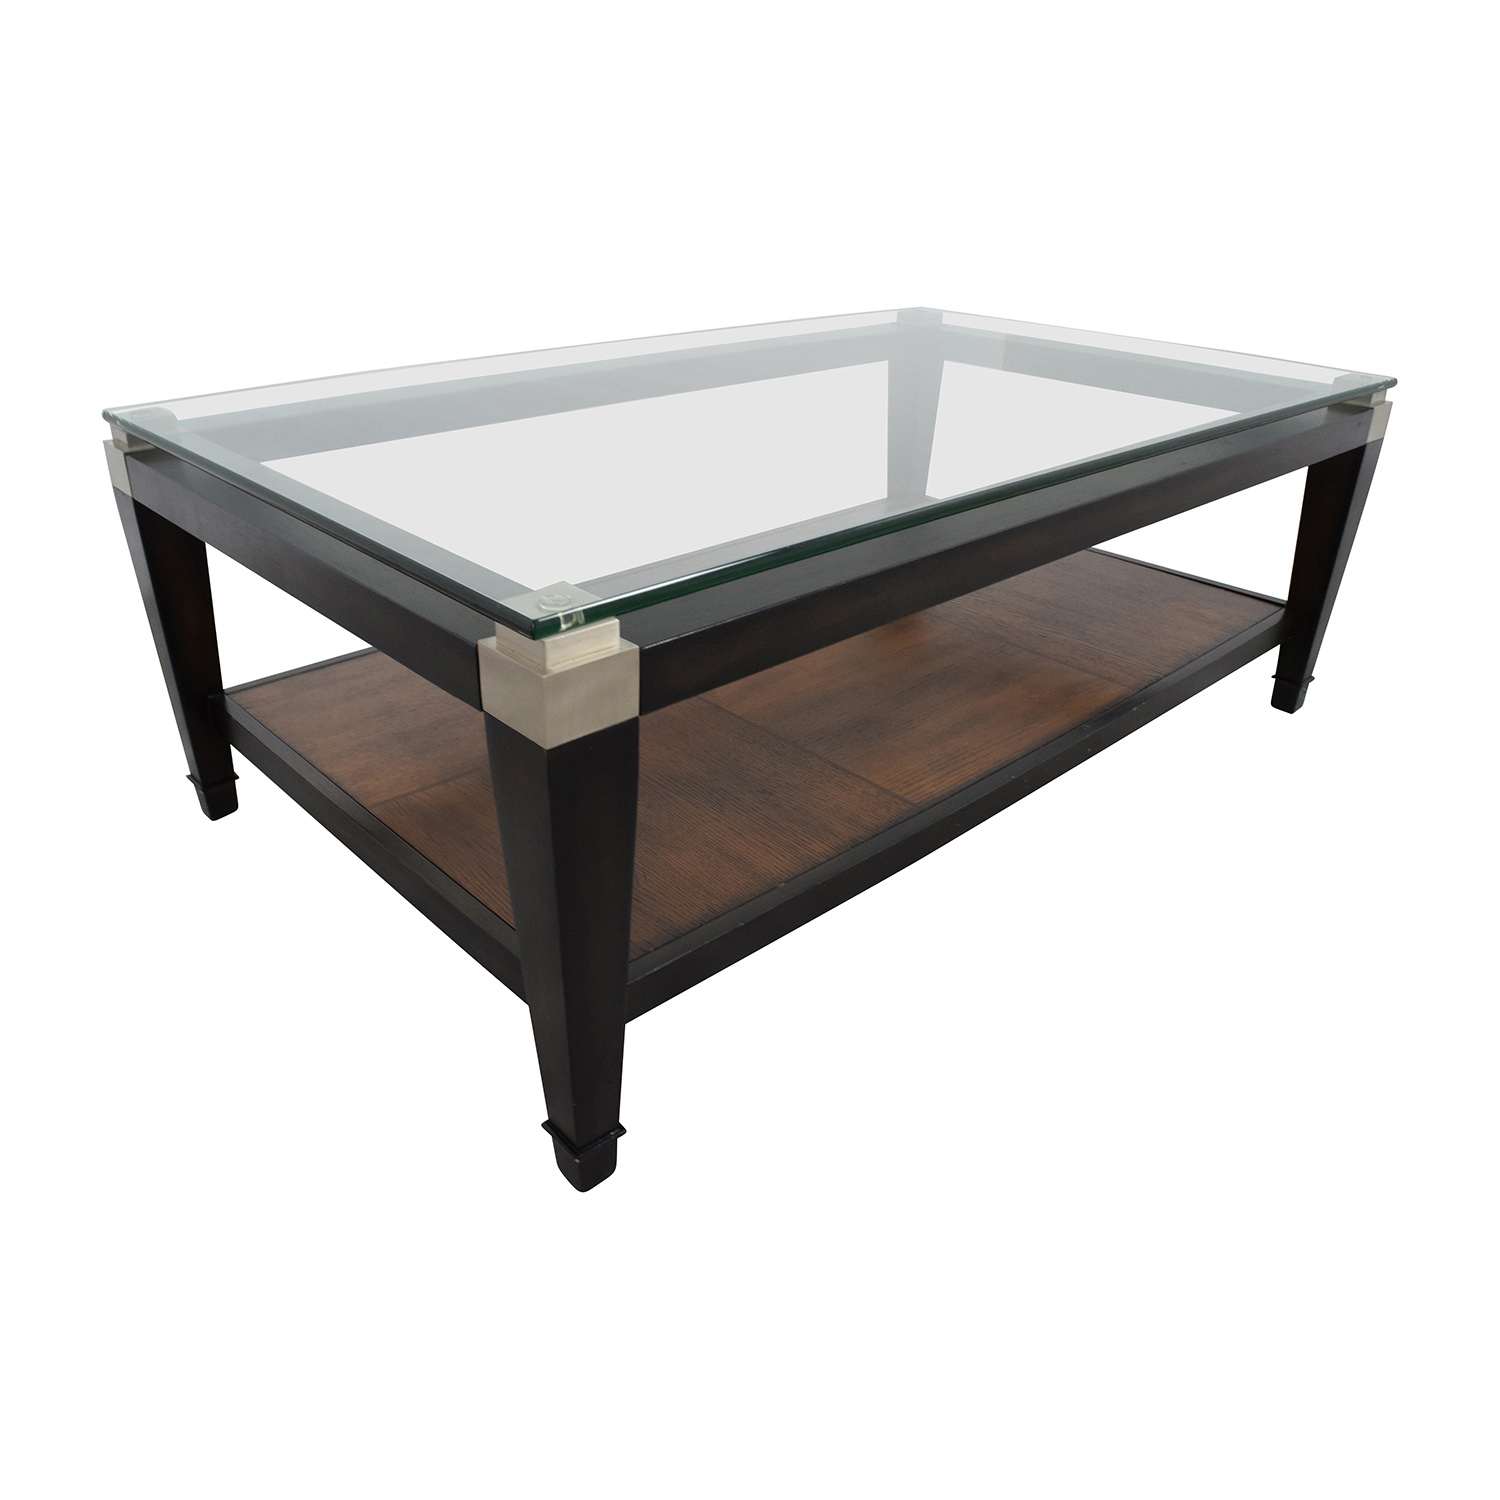 78% OFF Macys Macy s Glass and Wood Coffee Table Tables